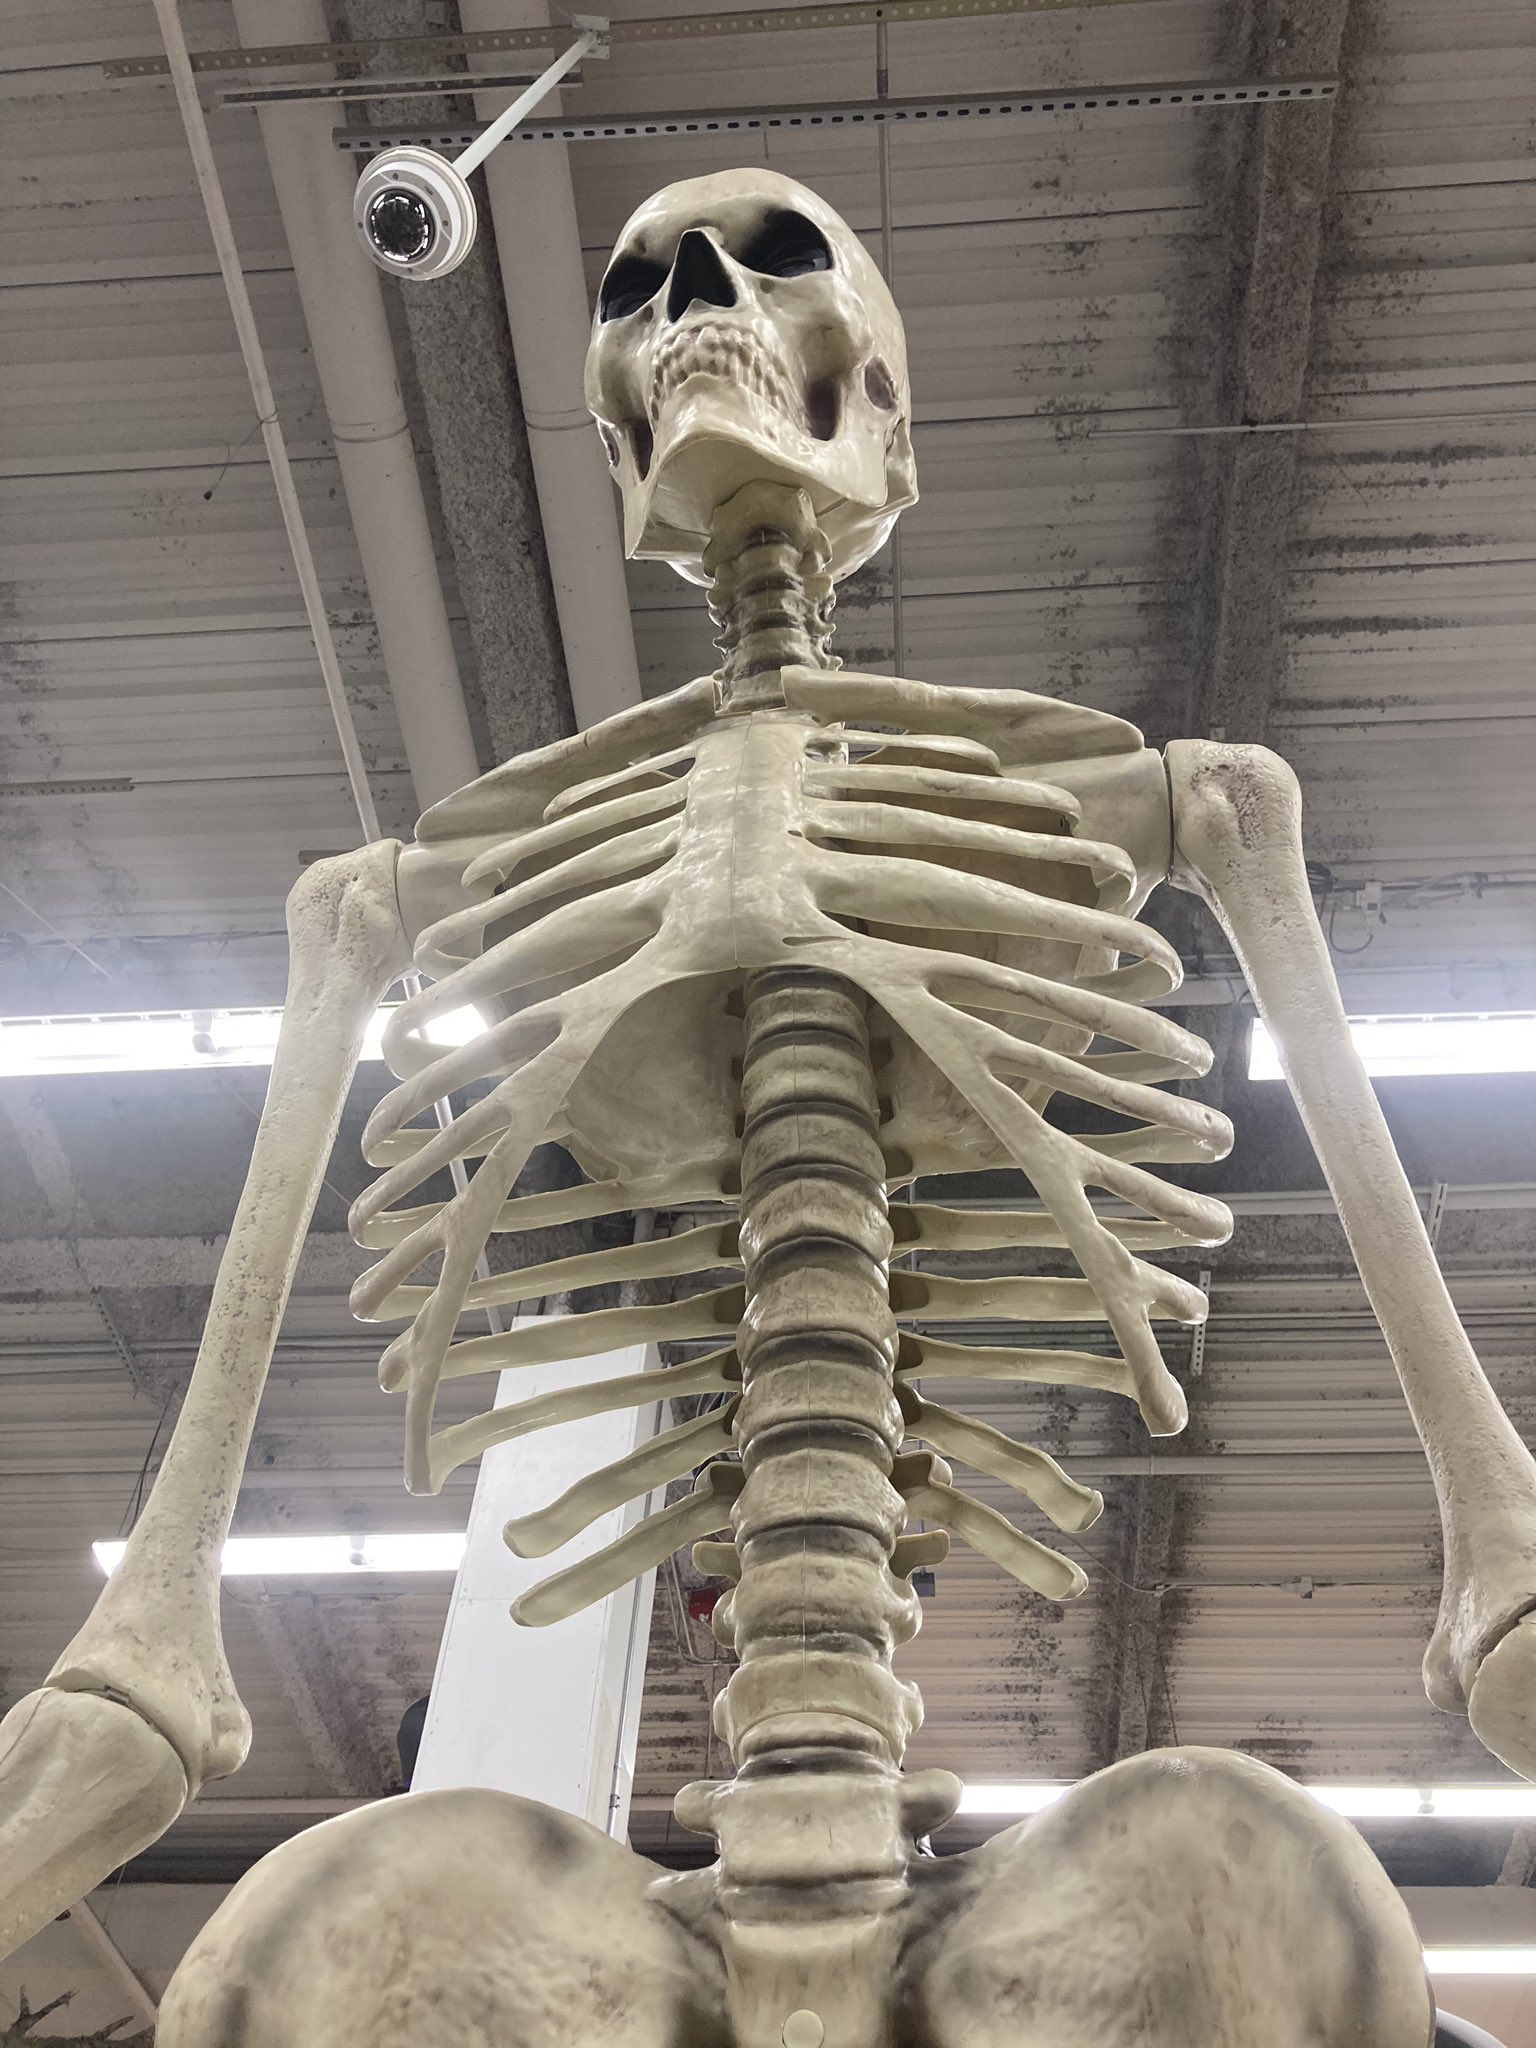 Home Depot Giant Skeleton Is Taking The Internet By Storm Resetera